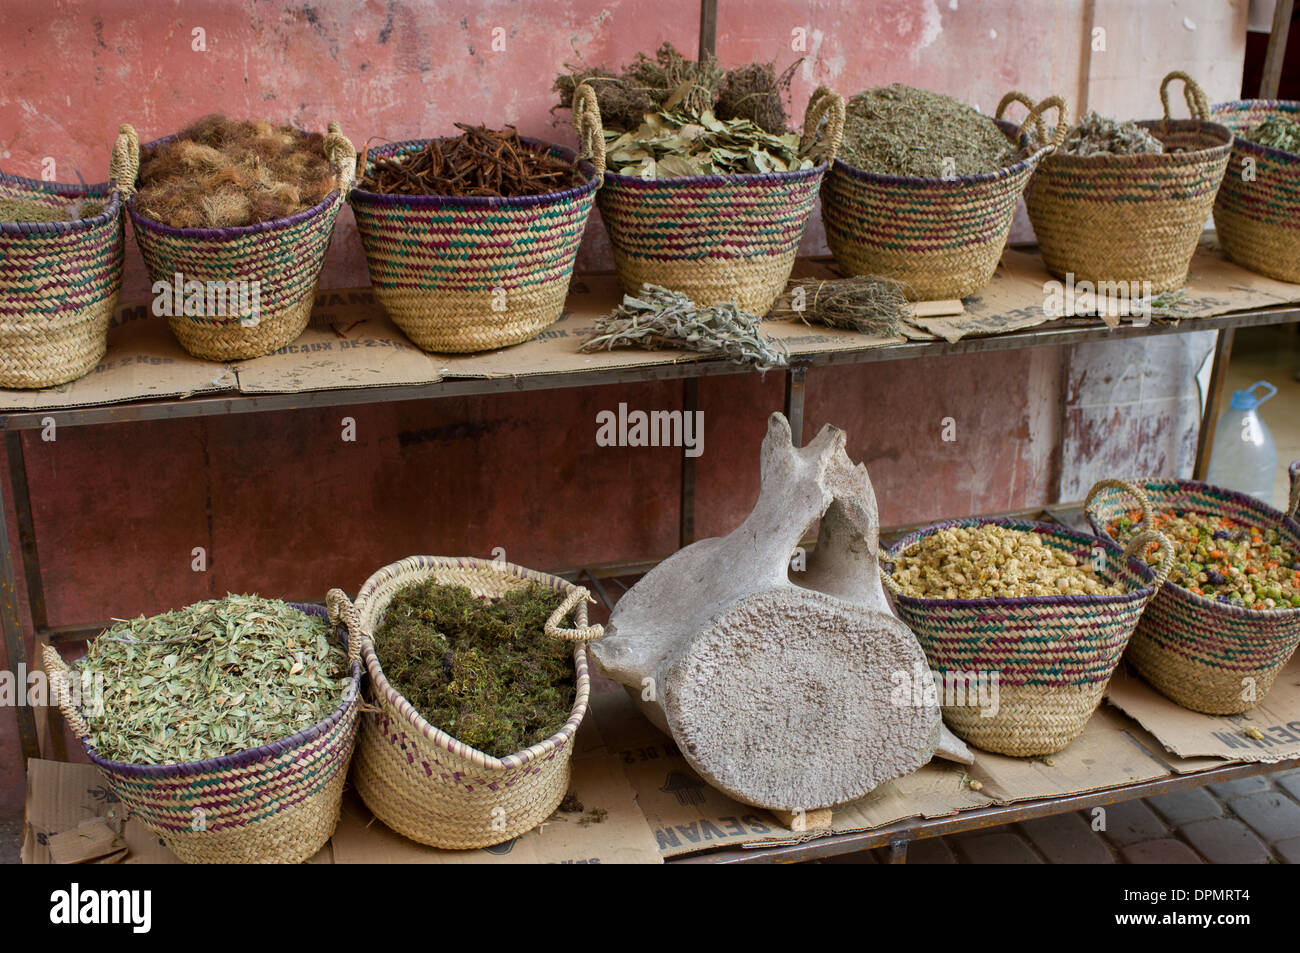 Stall selling herbs, spices and a whale vertebra in the Medina, Marrakech, Morocco - Stock Image